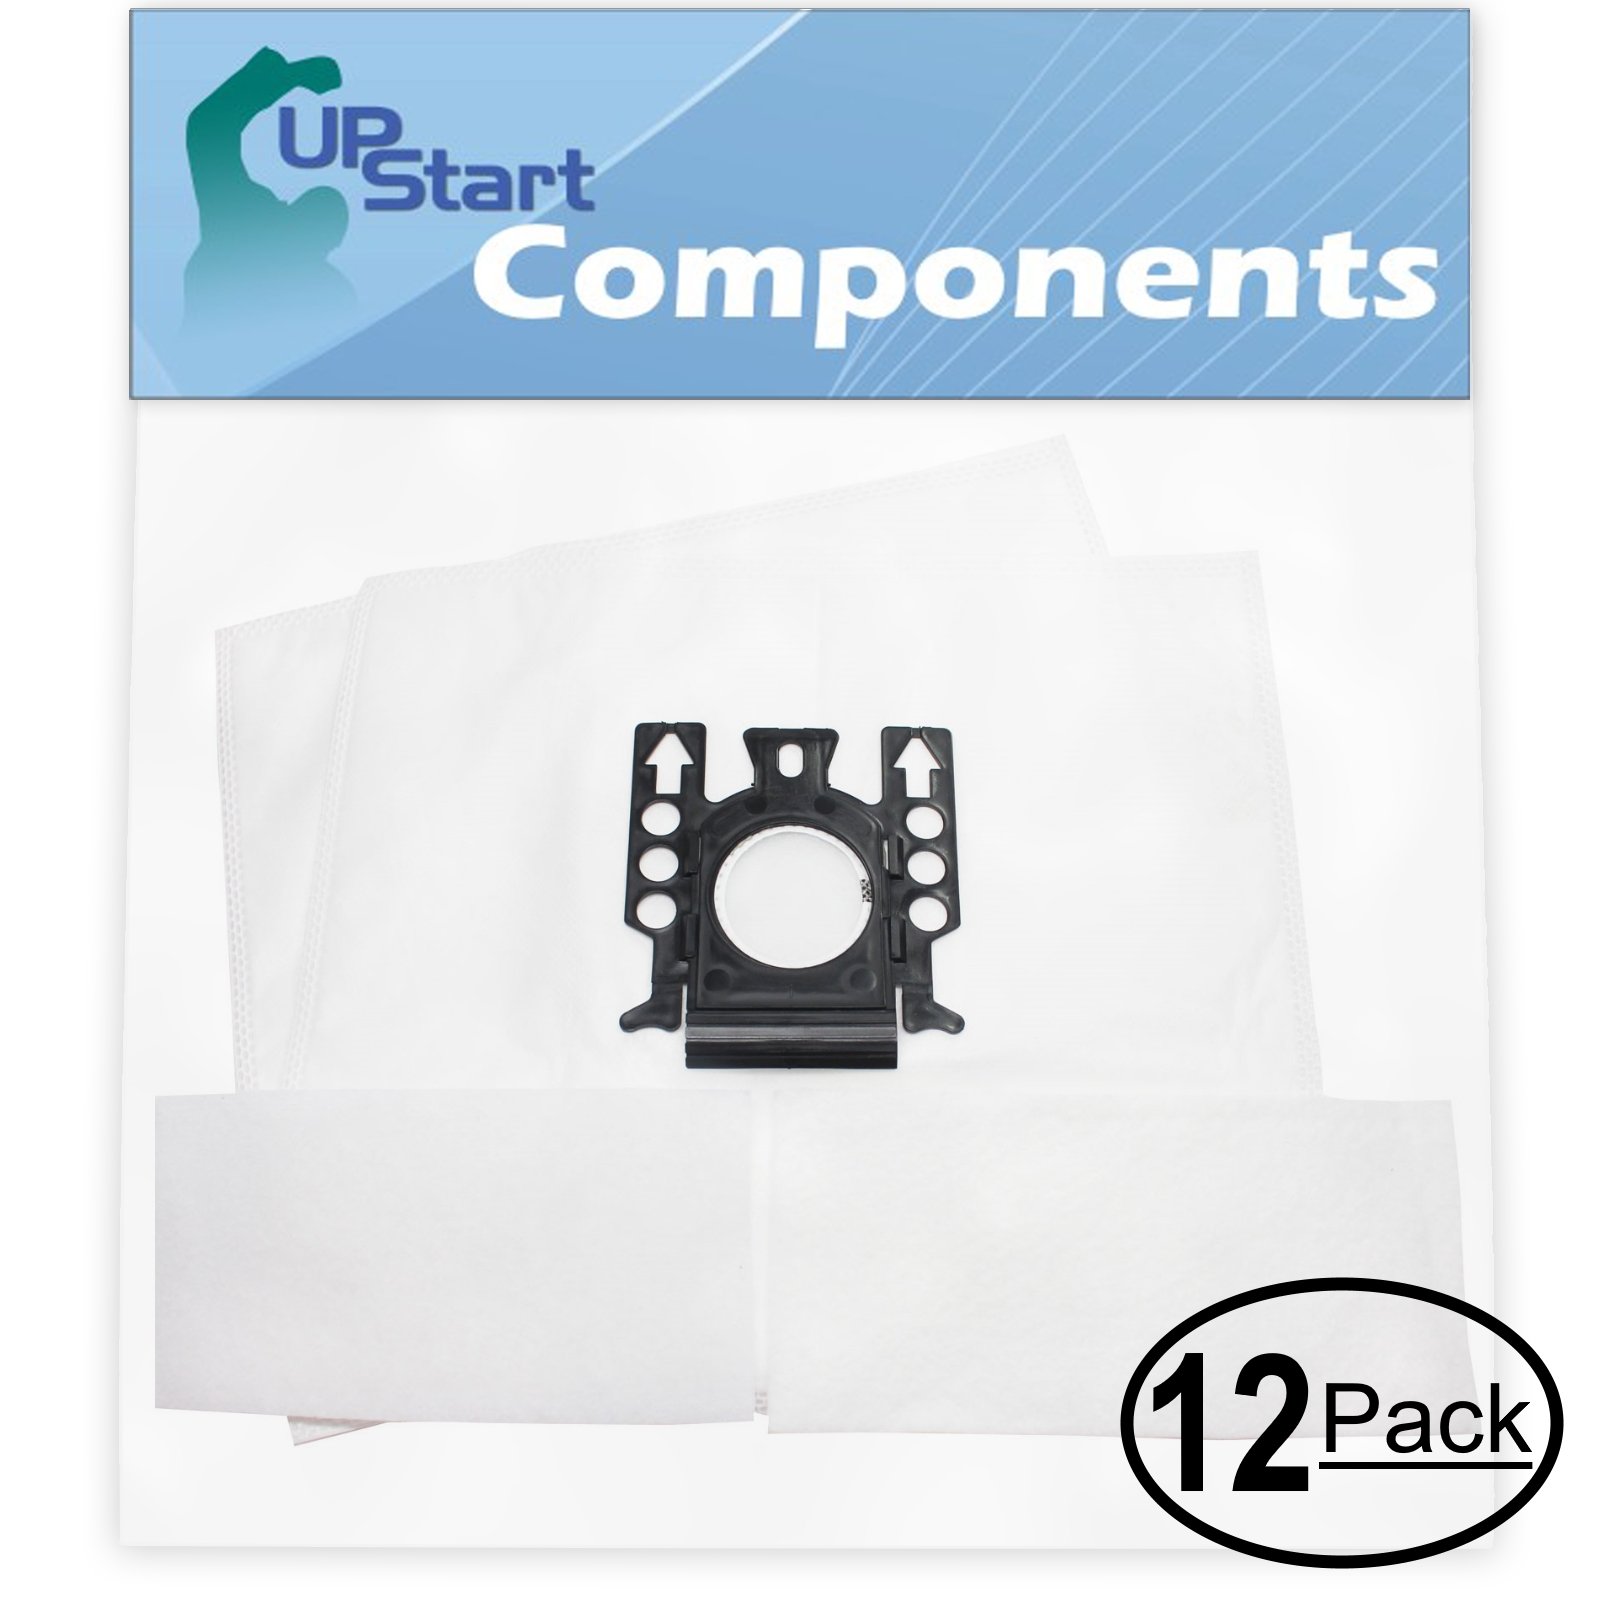 S336i 2 Micro /& 1 HEPA Filters for Miele S514 S548i 2 Vacuum Bags S318 S516